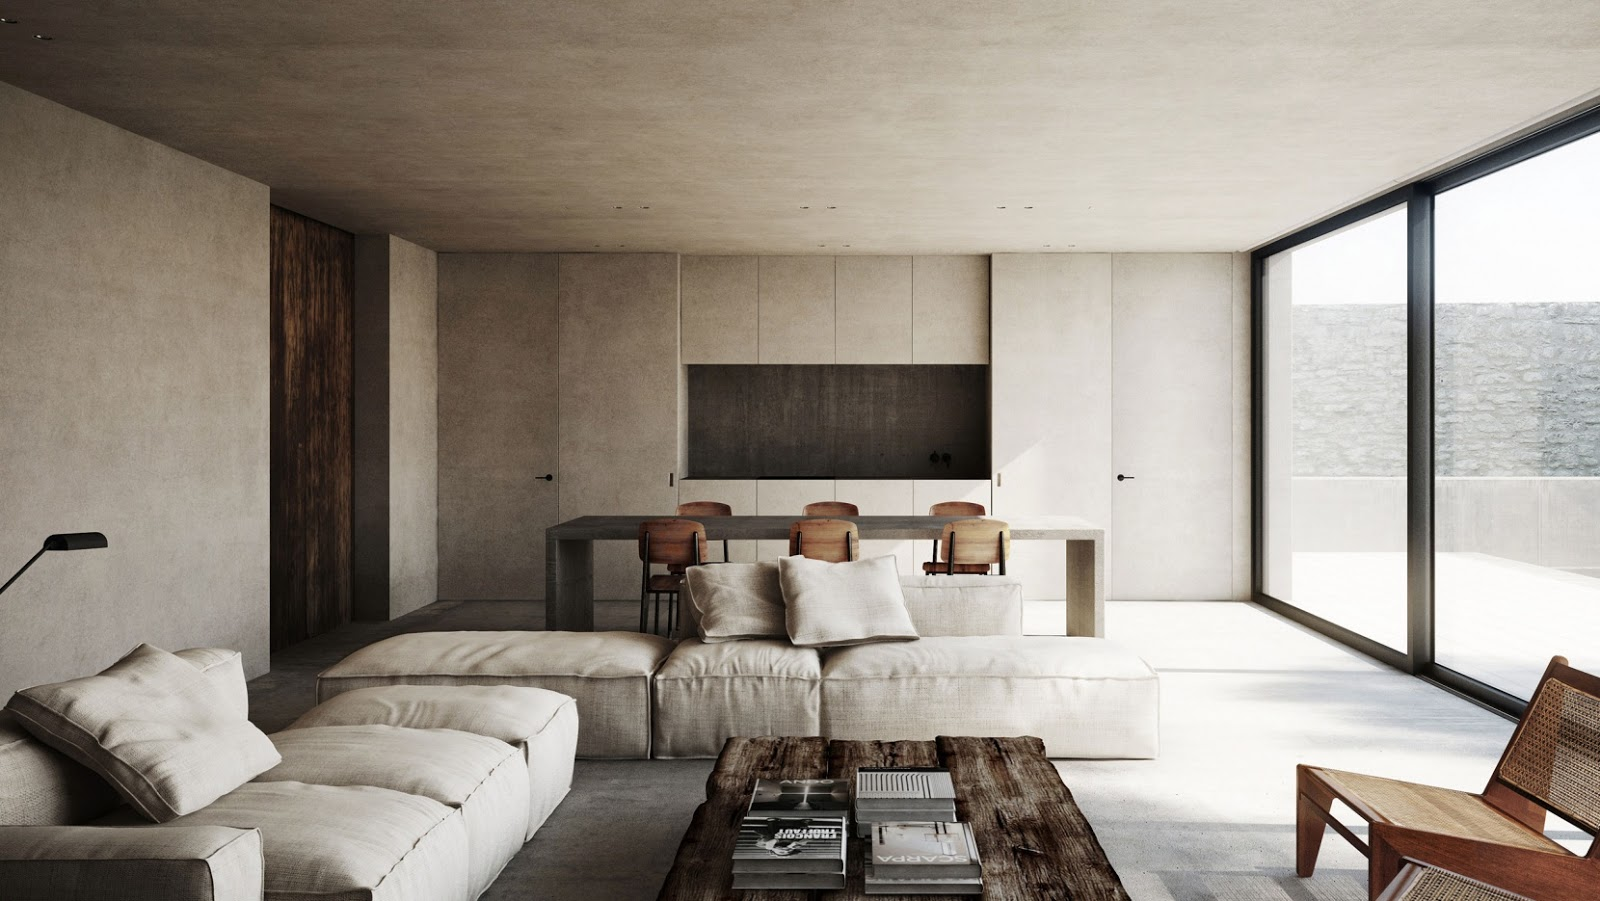 Amm blog a minimalist escape in france by nicholas for Minimalist house blog